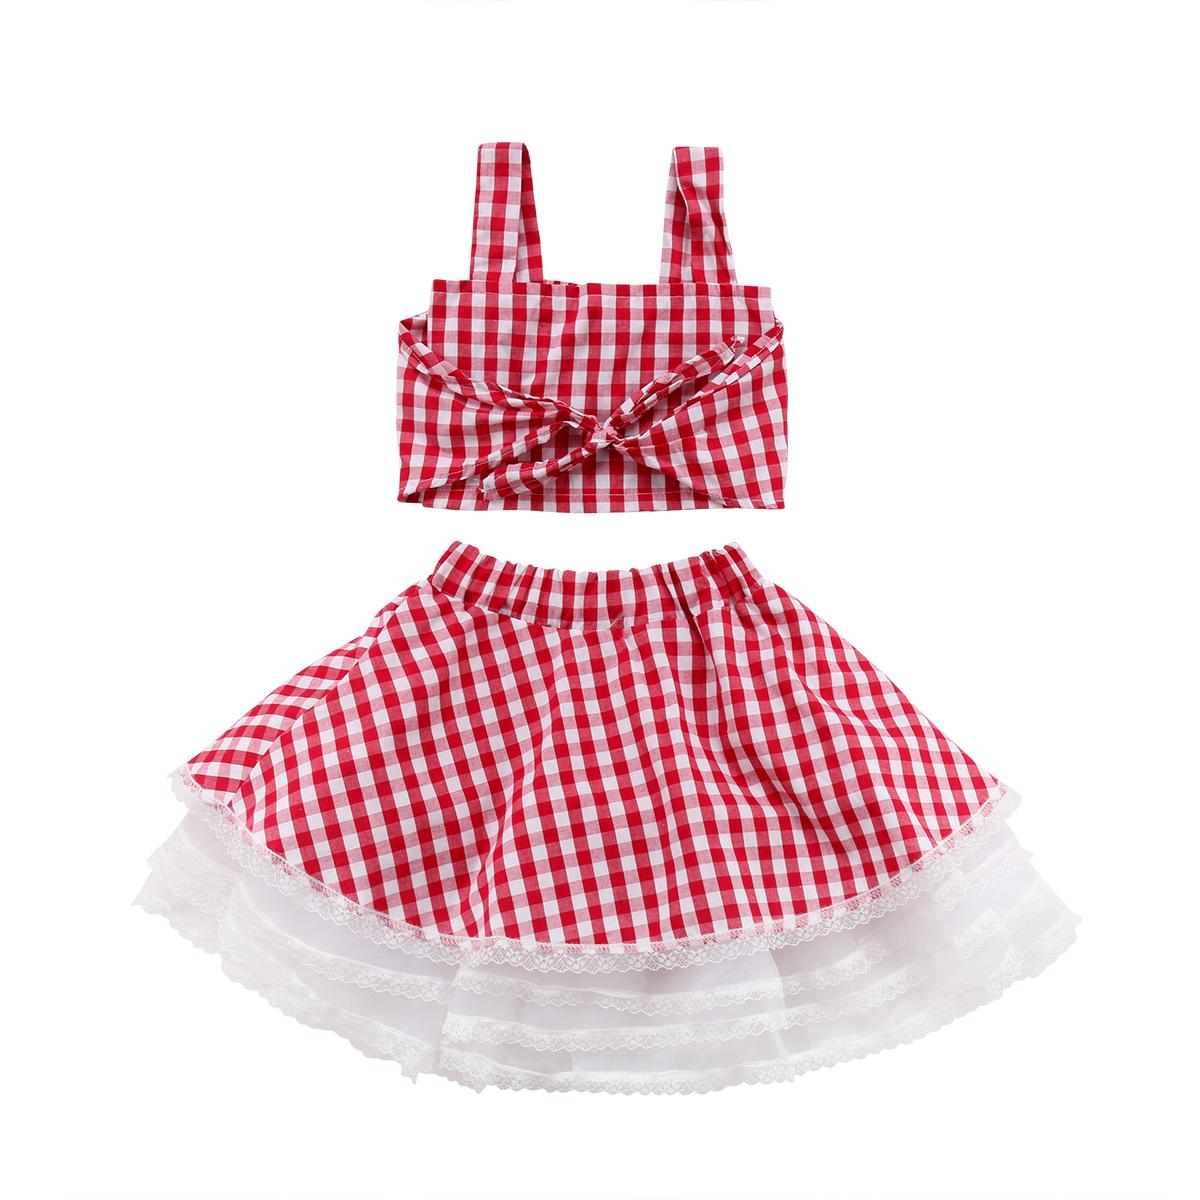 f915c958ab2 2019 Lace Kids Baby Girls Sleeveless Plaid Crop Tops Tank Tops Tulle Tutu  Skirt Princess Party Outfits Clothes Baby Girl 1 6T From Redeye, $33.43 |  DHgate.